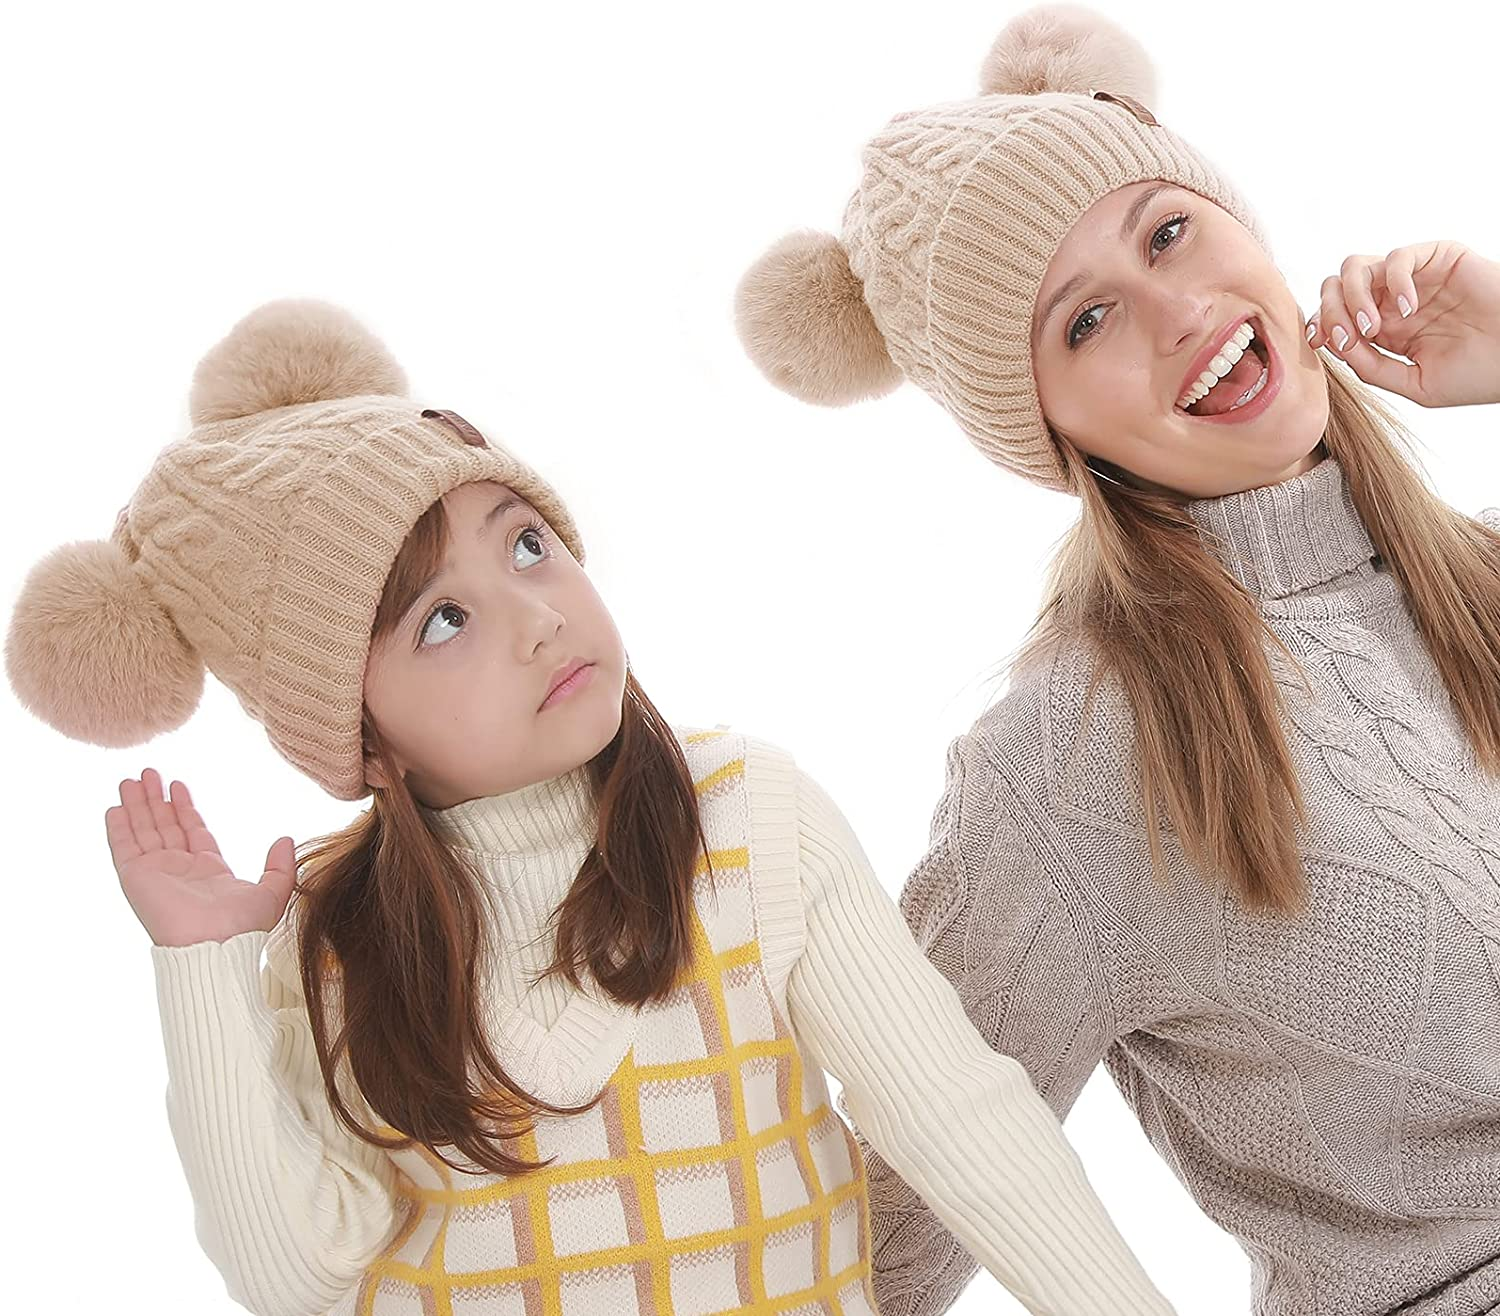 Mom and Baby Matching Hats Women Kids Winter Knit Beanies with Faux Fur Double Pom Pom, Mommy and Me Parent-Child Cute Warm Soft Beige Fleece Knitted Cap for Boys Girls Mother Daughter Son: Clothing, Shoes & Jewelry